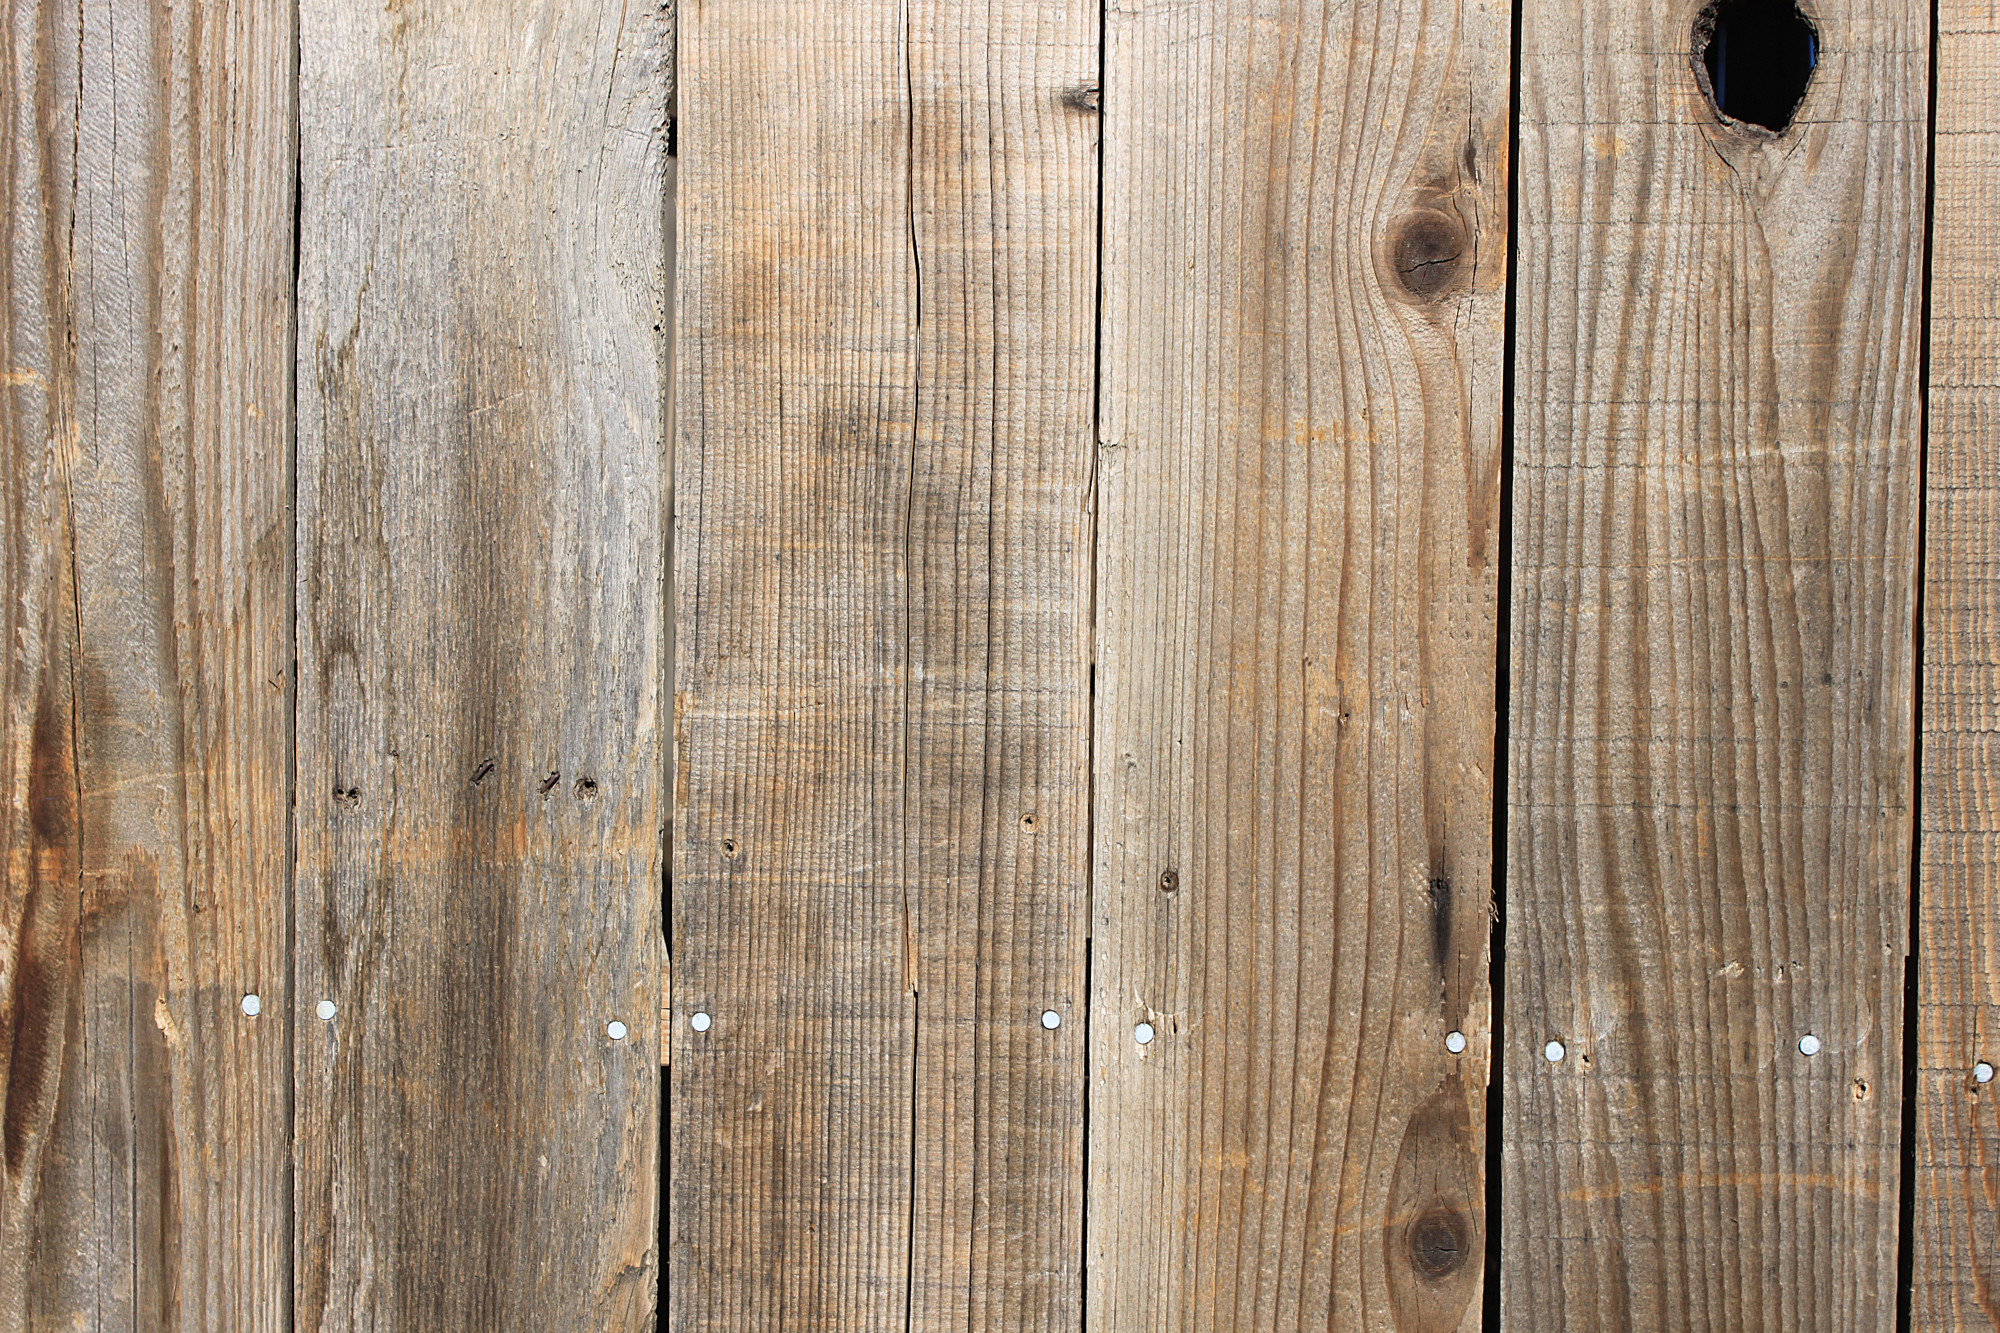 Rustic Wood Background Related Keywords & Suggestions Rustic Wood #9638